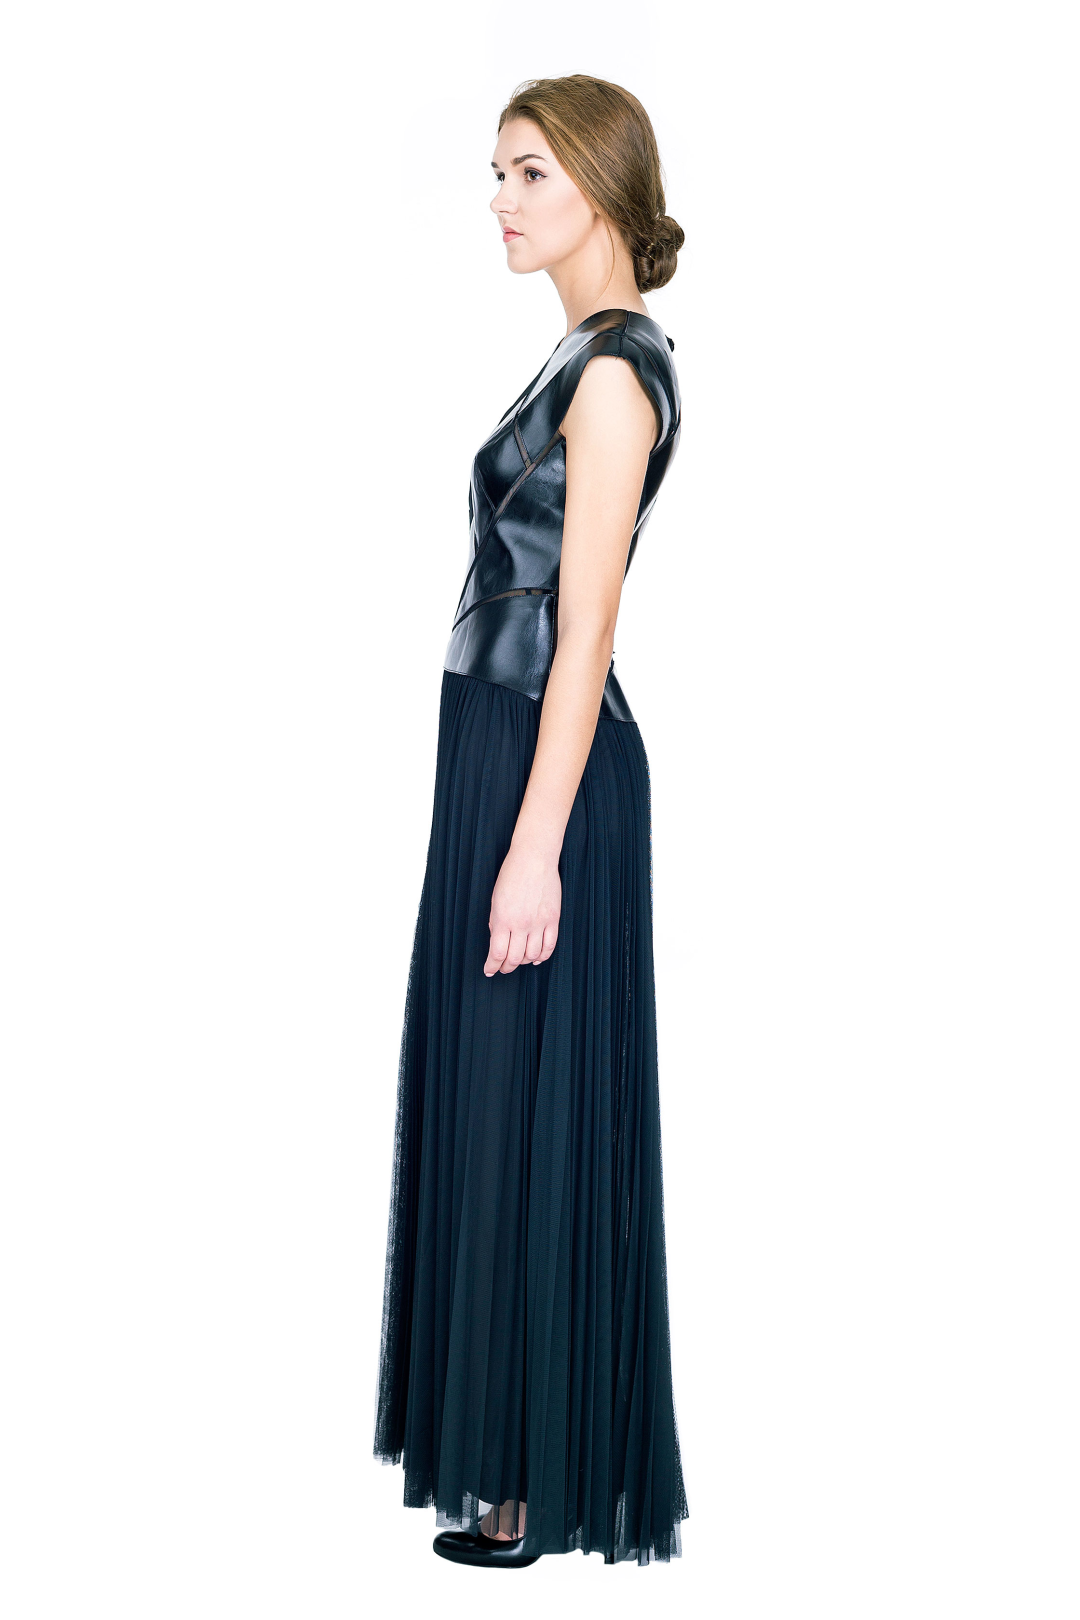 Ola Black Gown